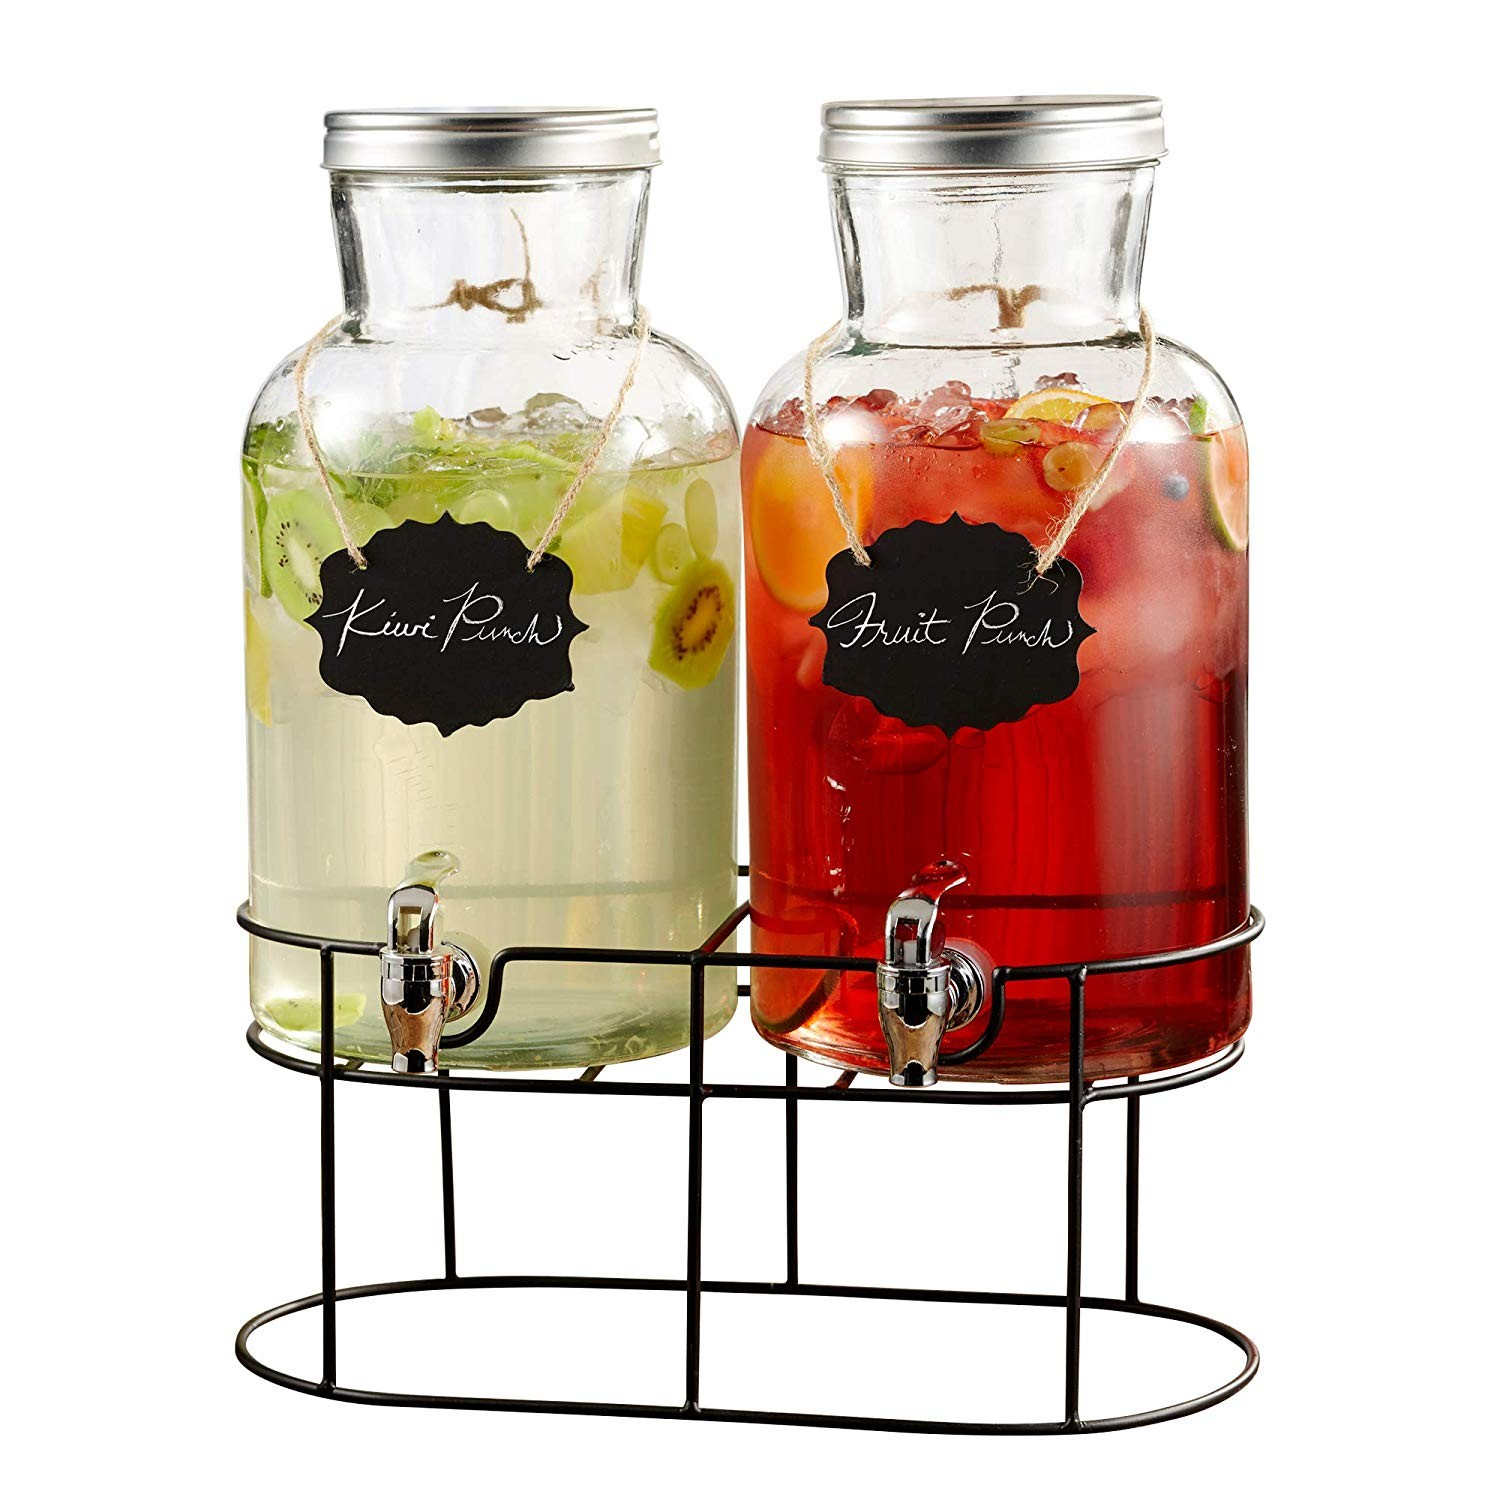 Style Setter Sierra 210439-GB 1.2 Gallon Each 2 Piece Glass Beverage Dispenser Set with Metal Stand & Lid, 15x7.5x16.5, Clear